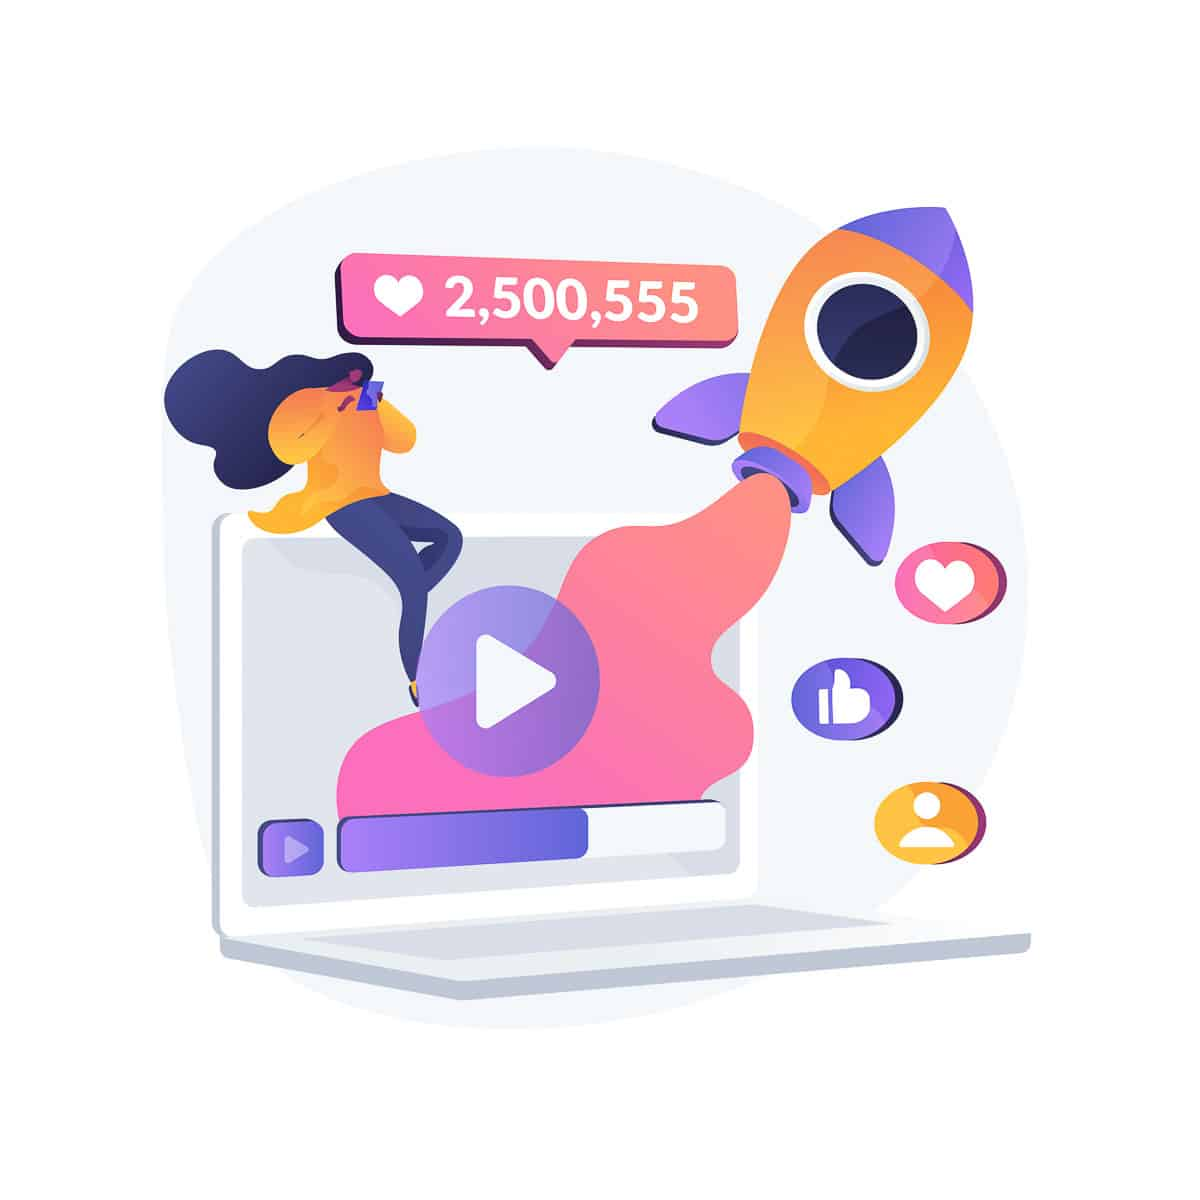 Viral content abstract concept vector illustration.